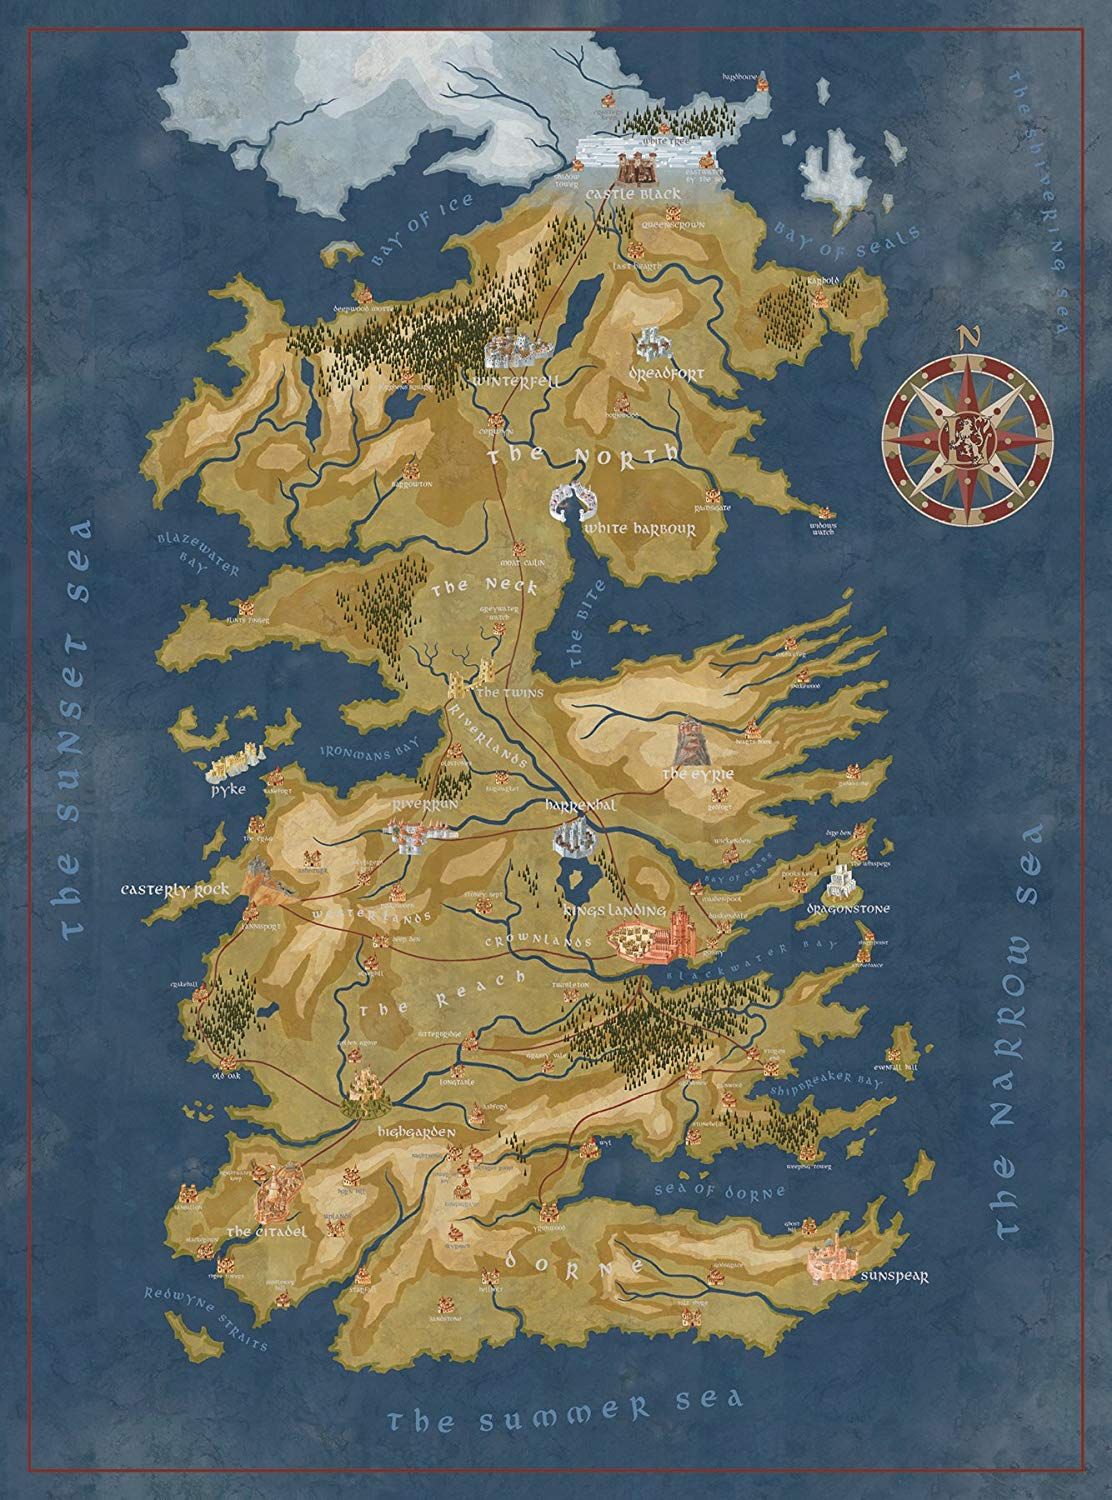 Game of Thrones Puzzles - The Seven Kingdoms of Westeros King Of Thrones Map on a clash of kings map, king sitting in throne room, king of towers map, river run condominiums map, king s landing throne room, kingdom clash of the kings map, dothraki on seven kingdoms map, king of thorns map, king of wisconsin map, from gulliver's travels map,